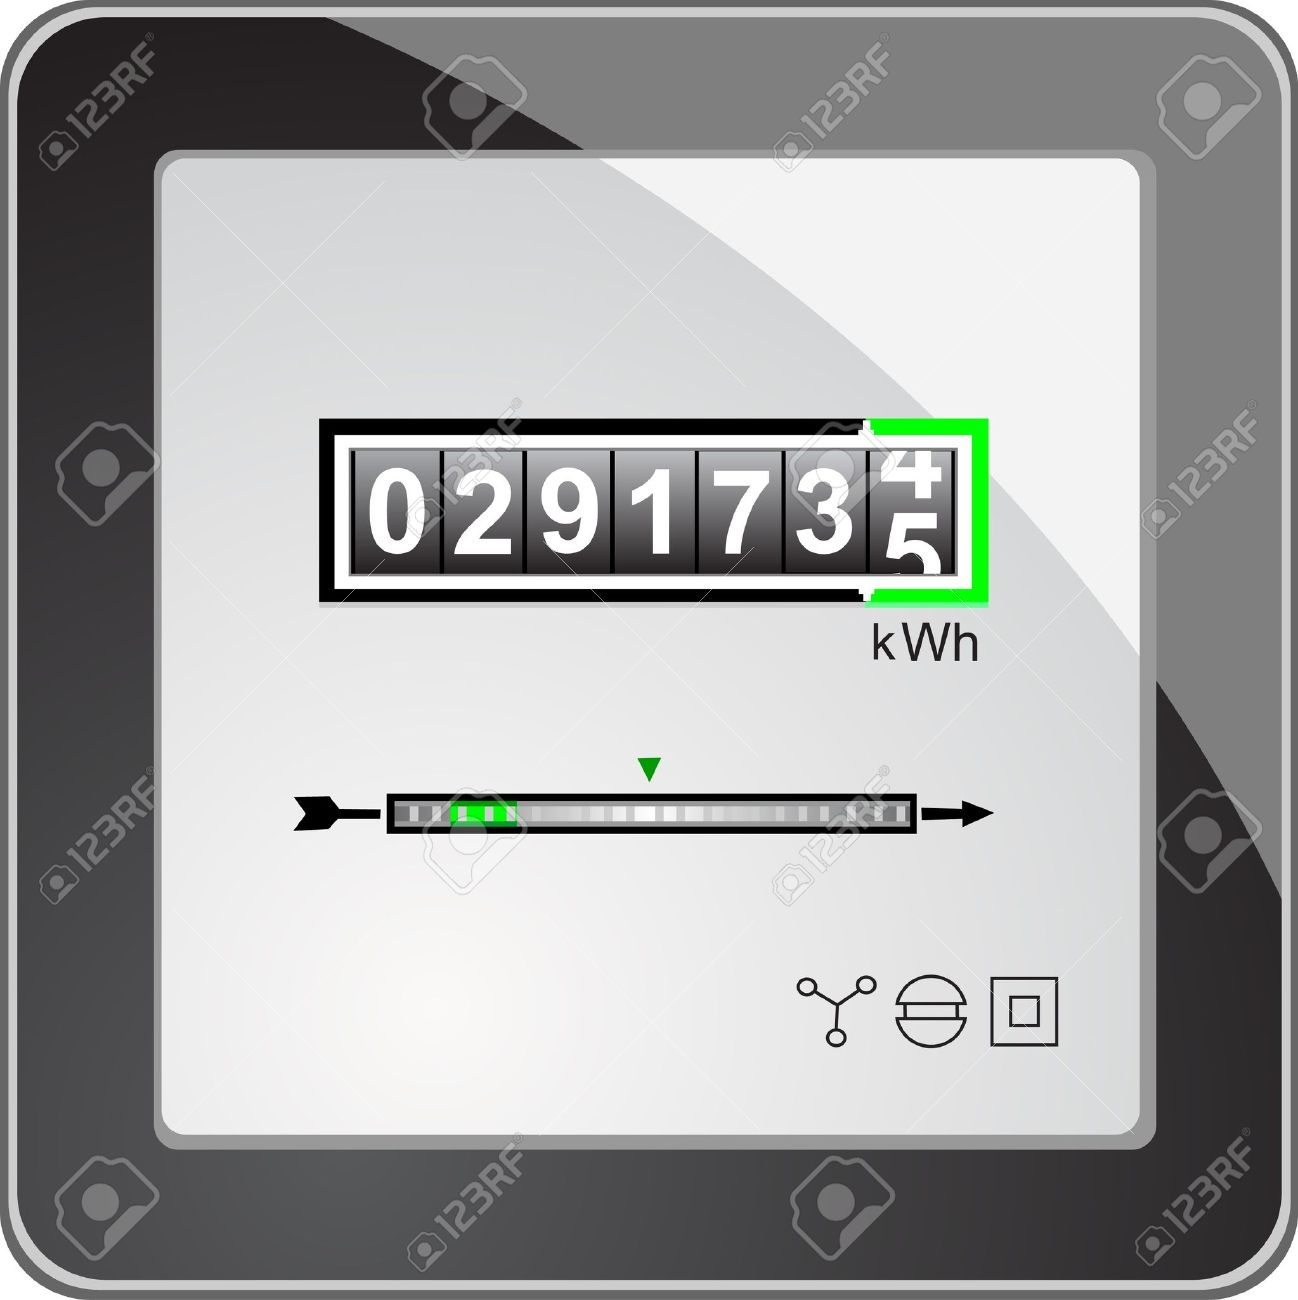 Power Meter Clip Art : Electricity meter clipart clipground